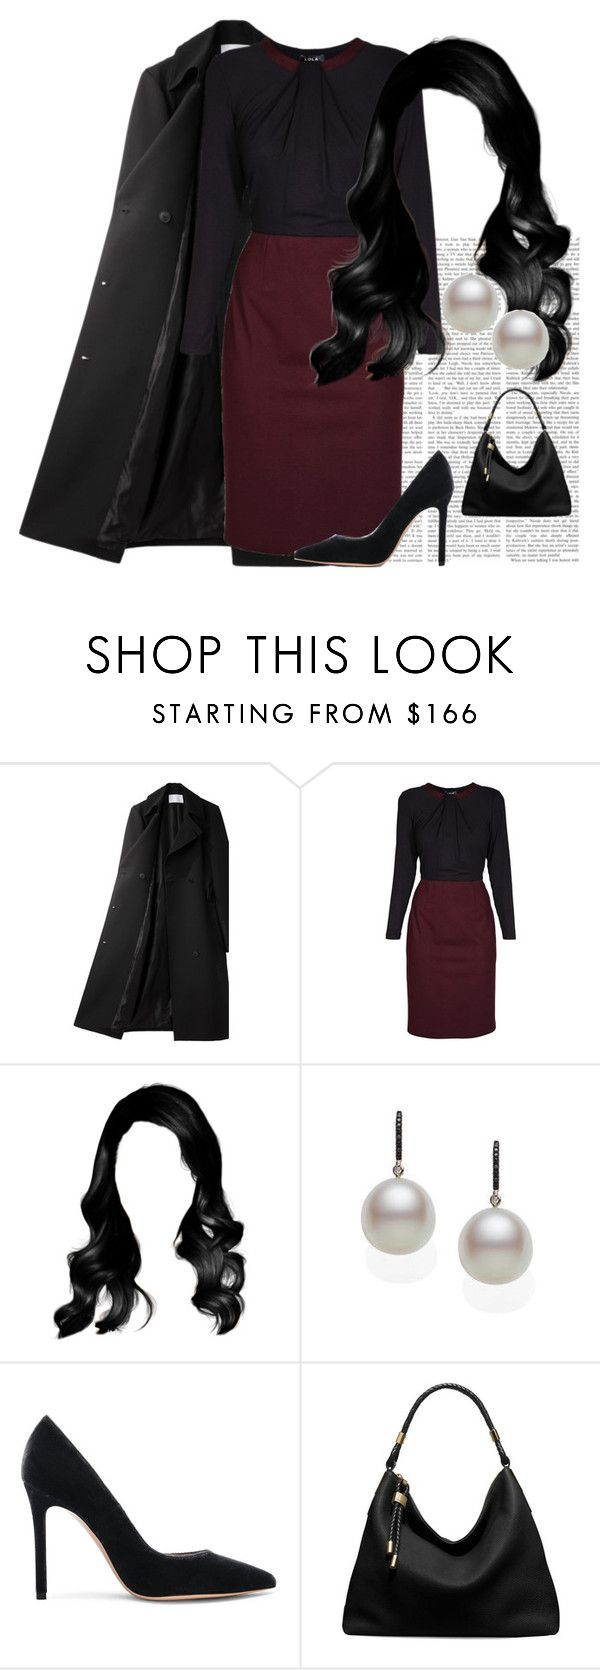 """""""Sofía Morris meeting Albert McPherson and telling him about her frustration over the cover"""" by sofiamcpherson ❤ liked on Polyvore featuring Alexander Wang, Lola, Gianvito Rossi and Michael Kors"""